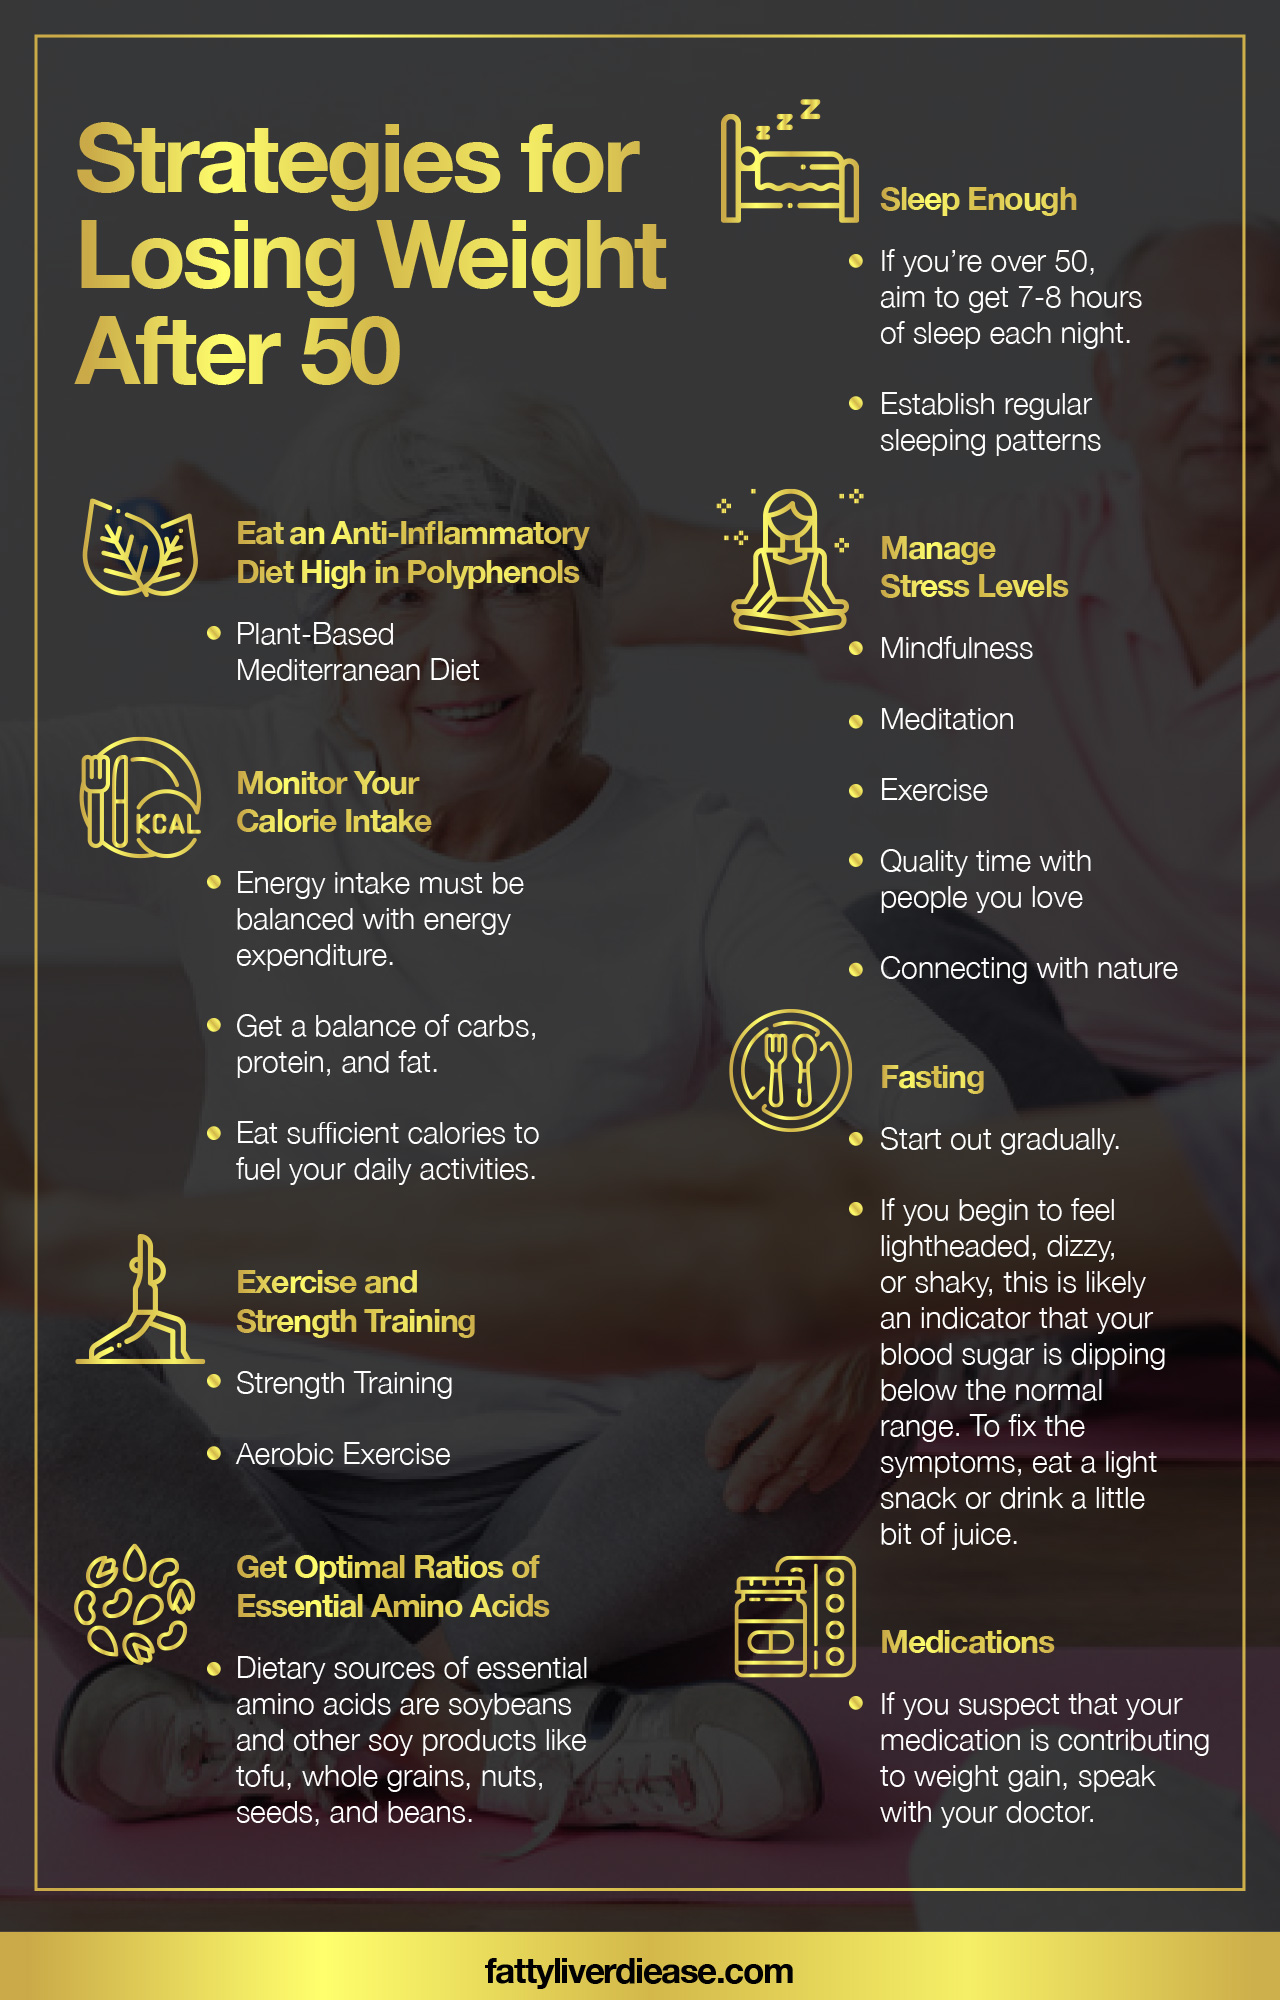 Strategies for Losing Weight After 50